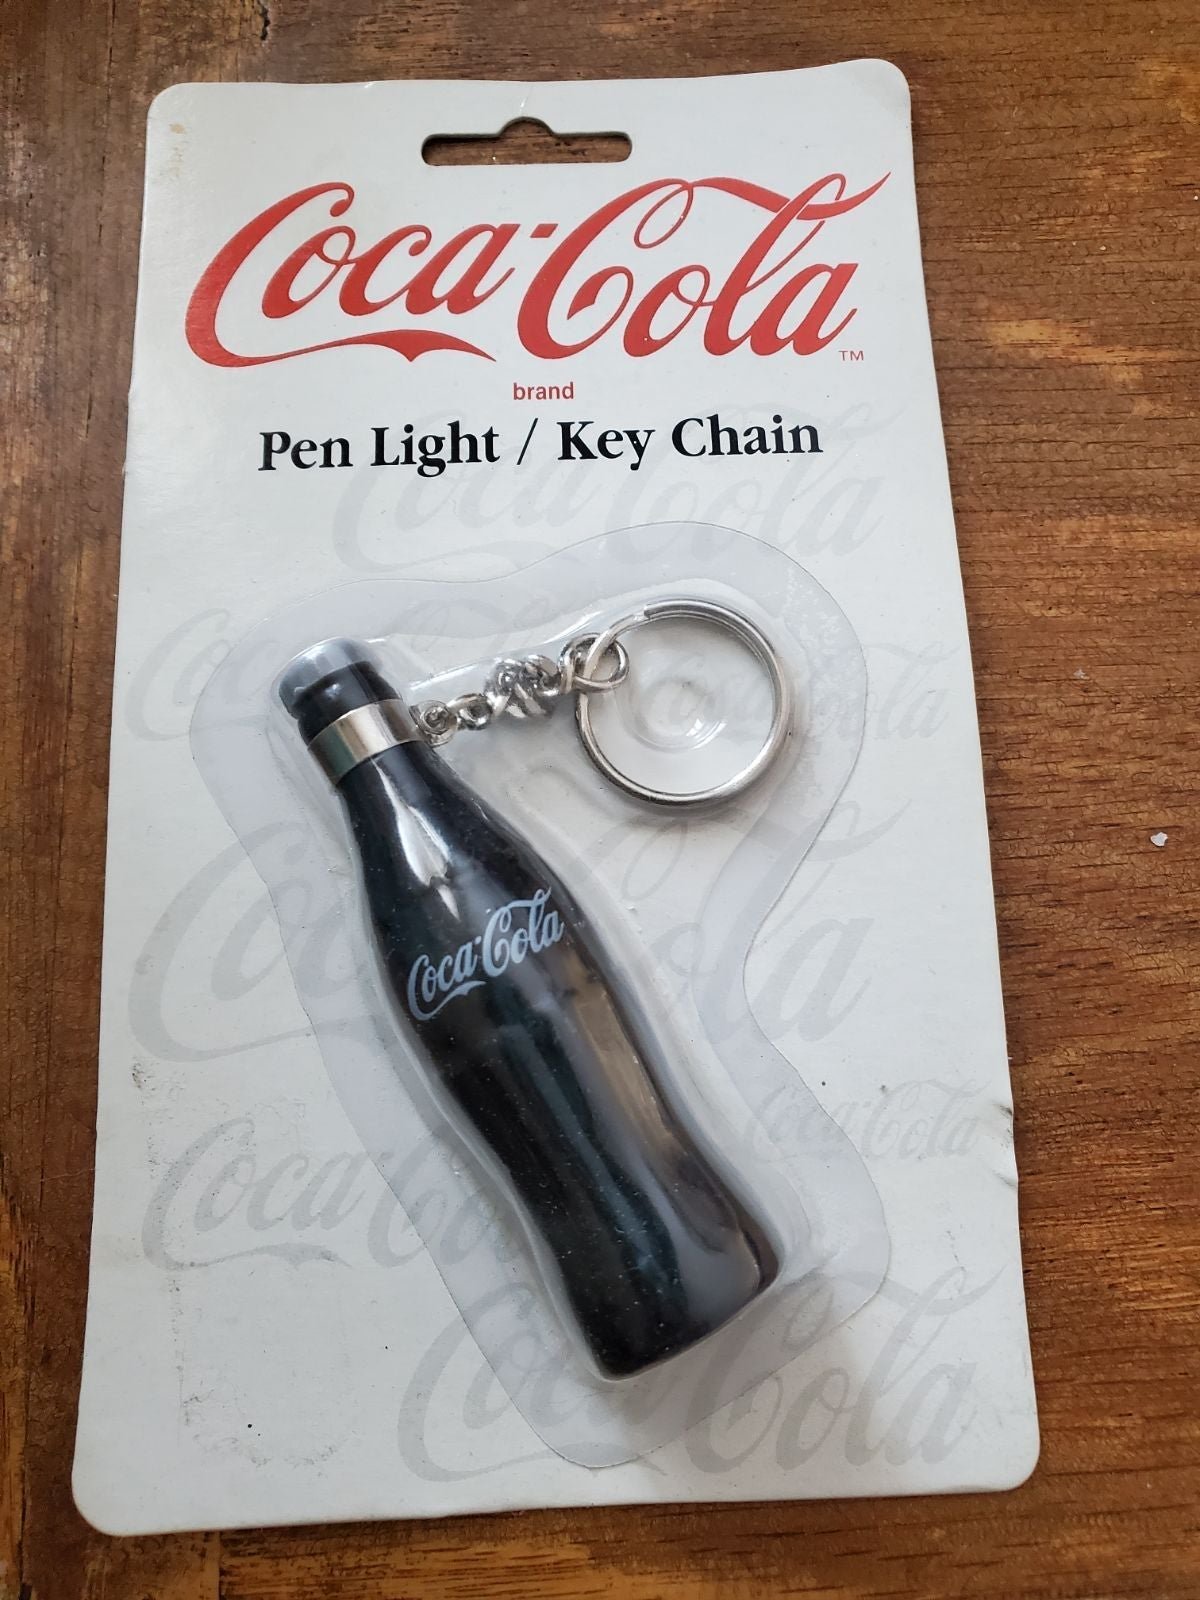 Coca-Cola pen light/key chain